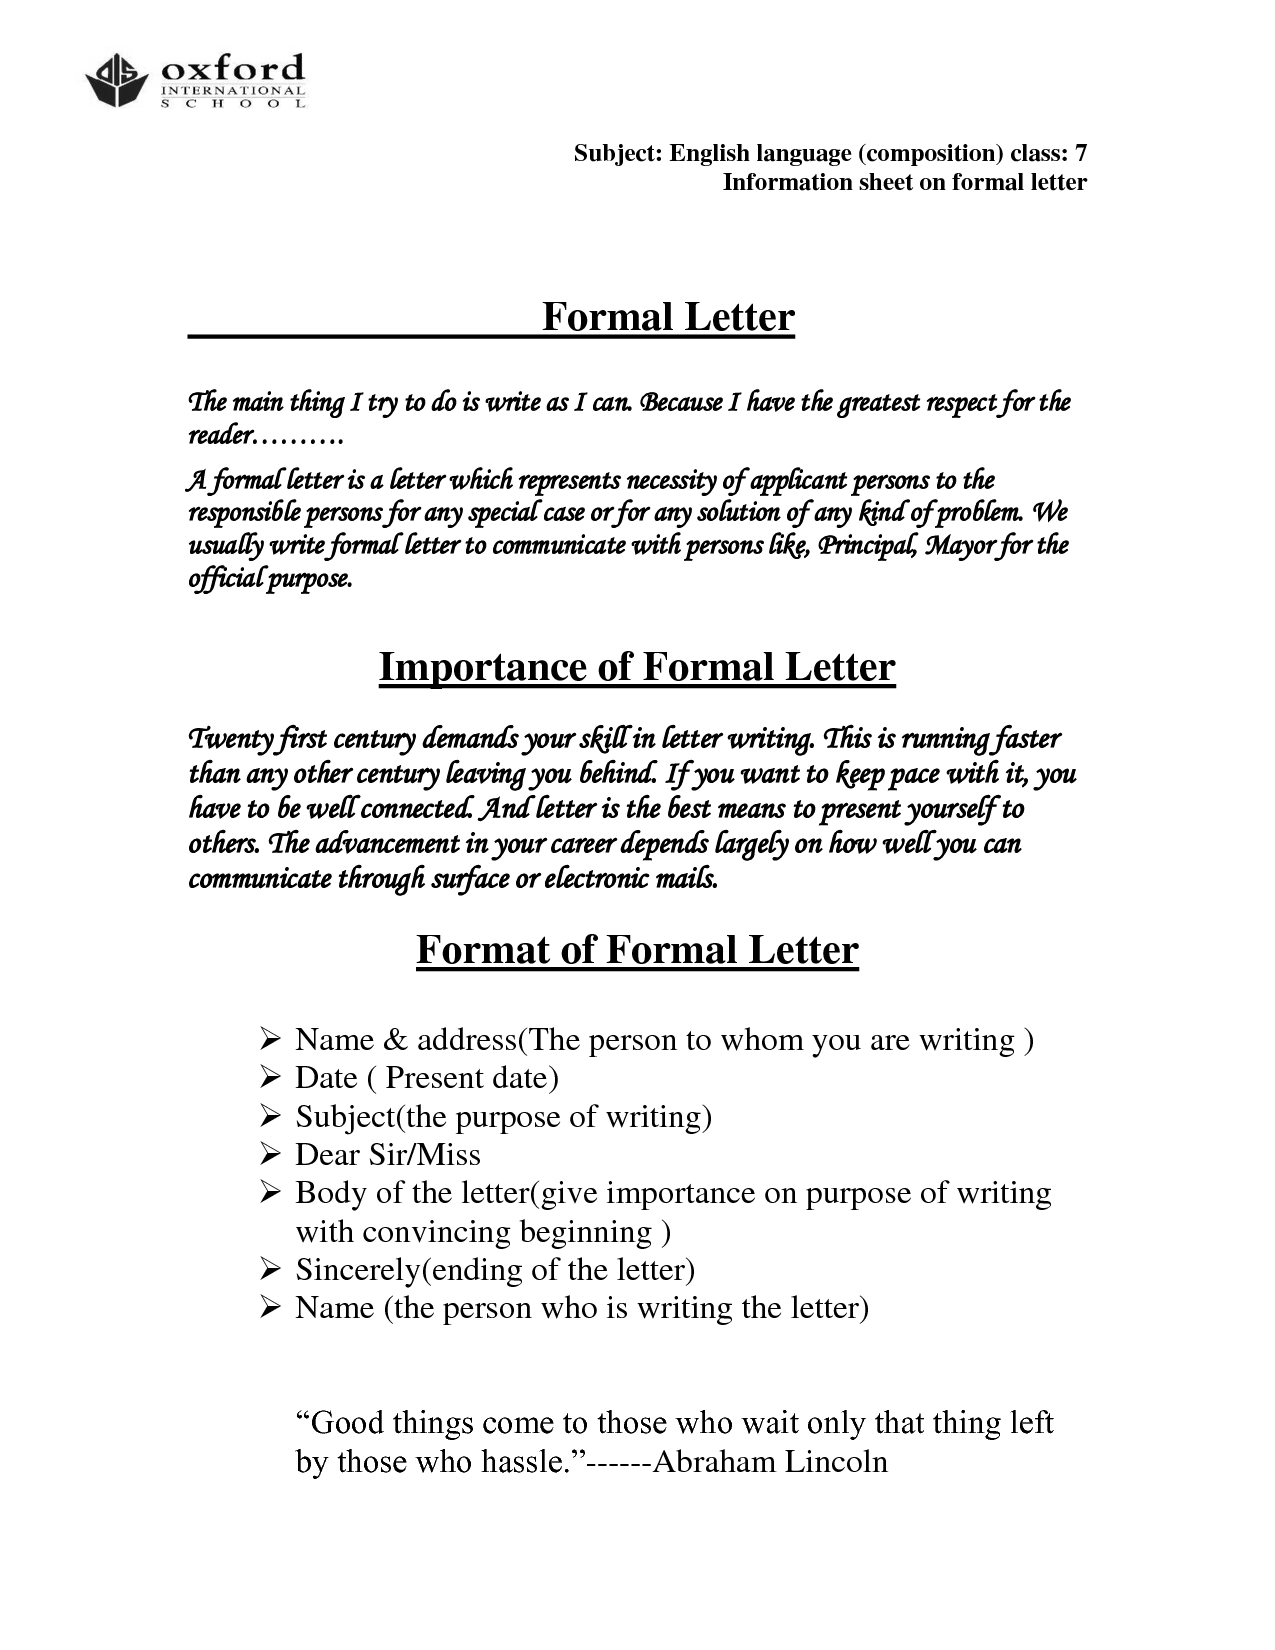 Official letter format templateofficial letter business letter official letter format templateofficial letter business letter sample spiritdancerdesigns